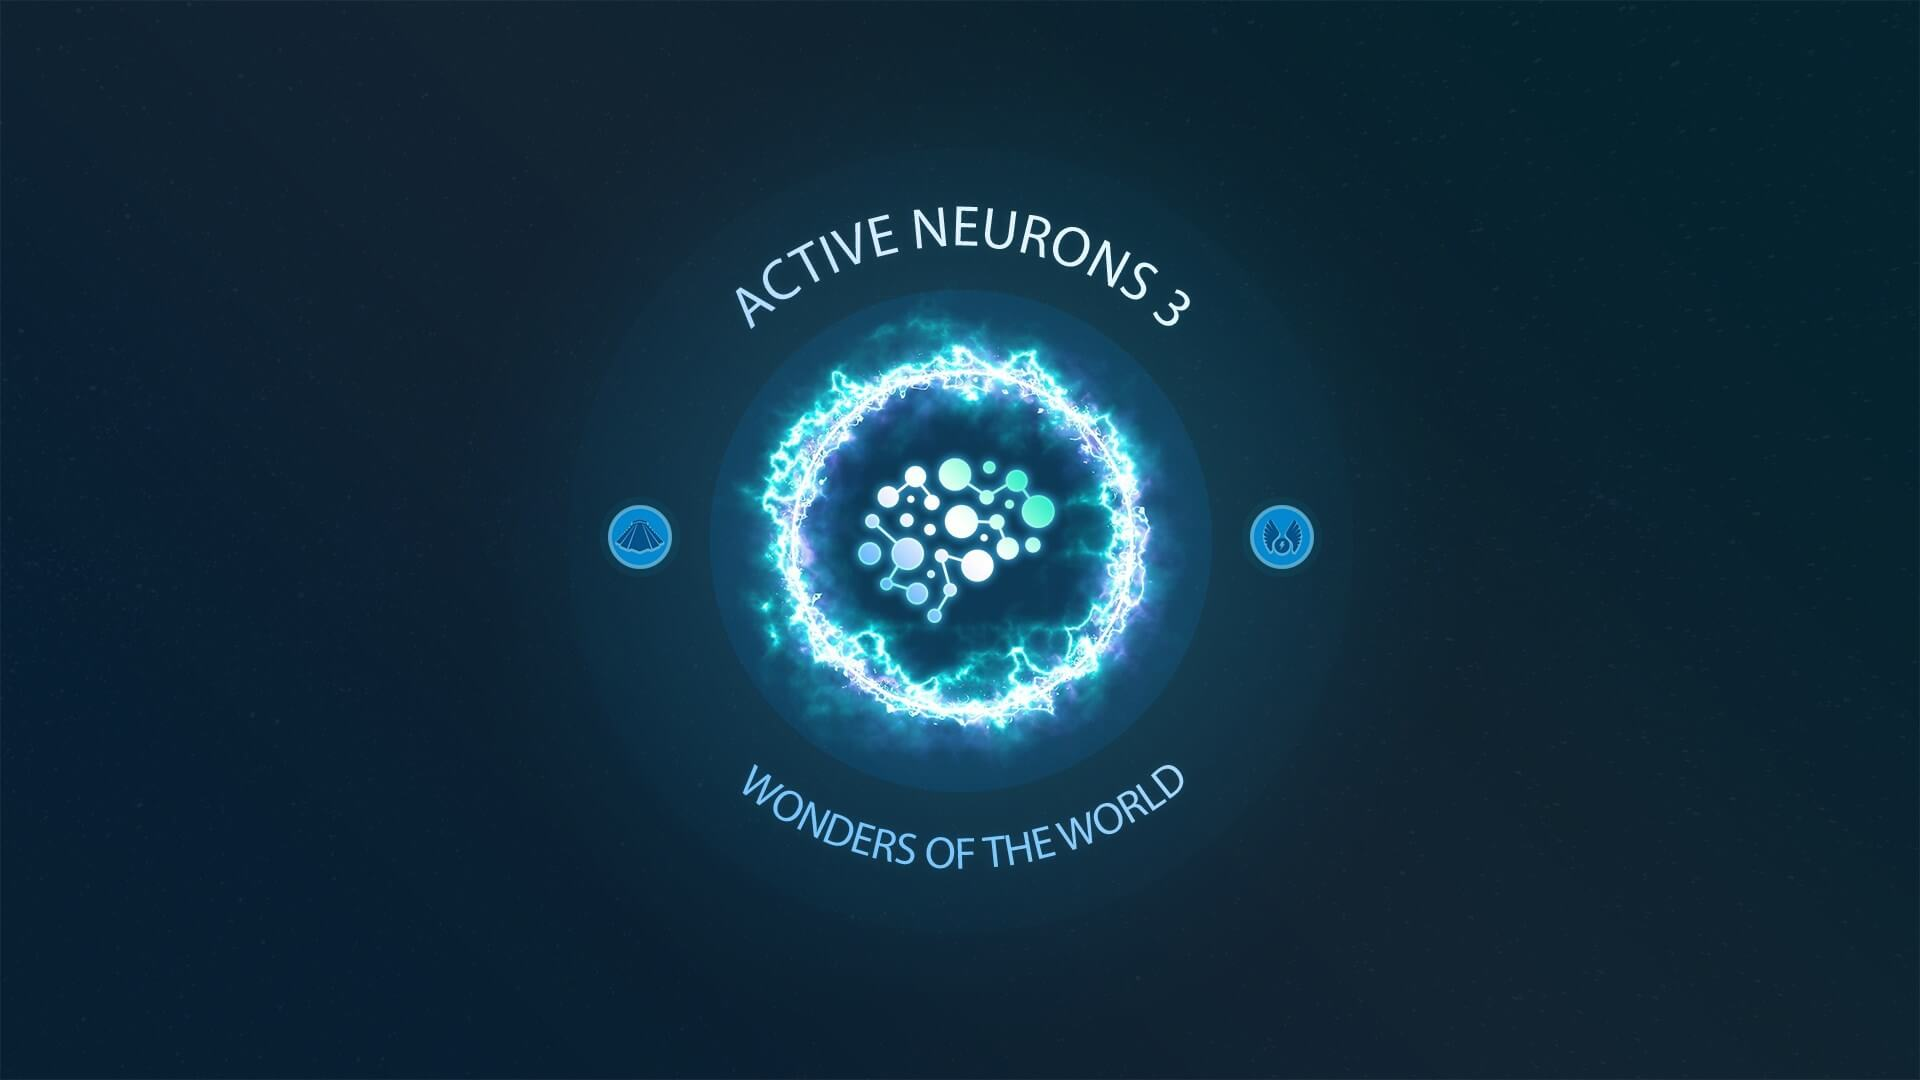 Active Neurons 3 - Wonders of the World Free PC Download